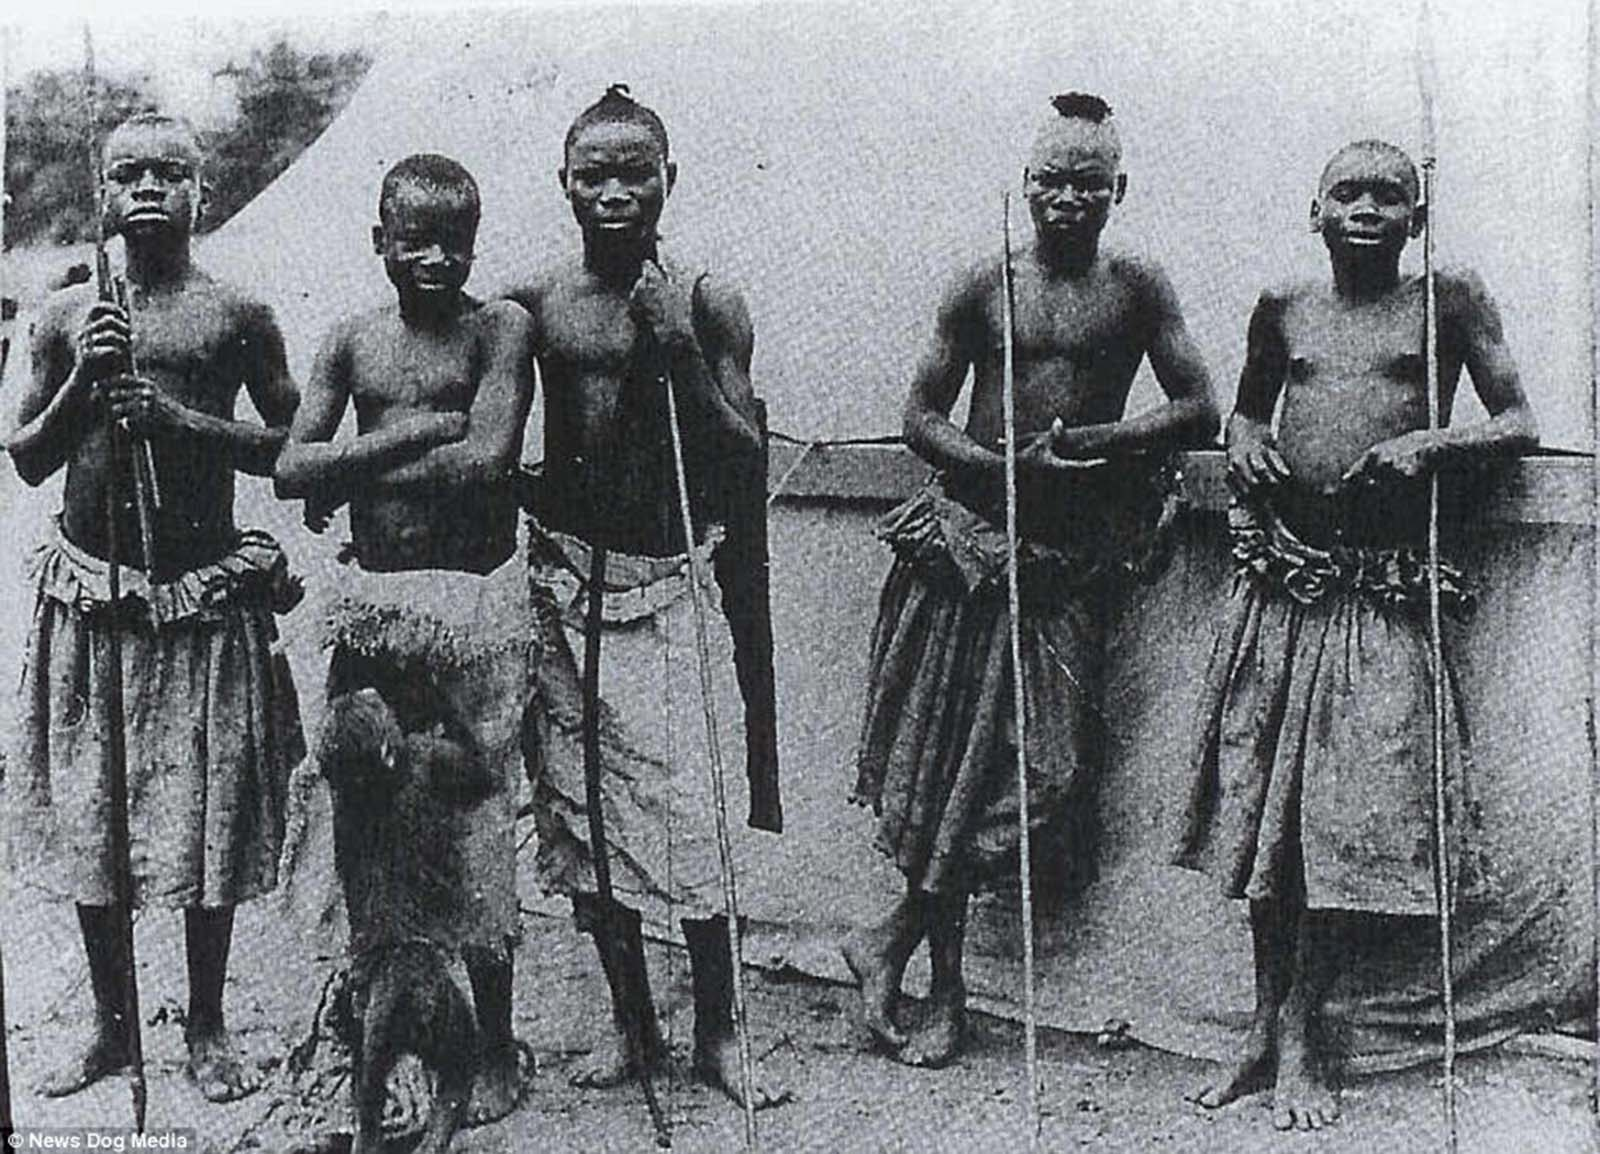 The dreadful treatment of Ota Benga (second from left), a Congolese man 'exhibited' in New York's Bronx Zoo in 1906, sparked outrage and he was eventually released. But six years later he tragically took his own life after being unable to assimilate into American life.